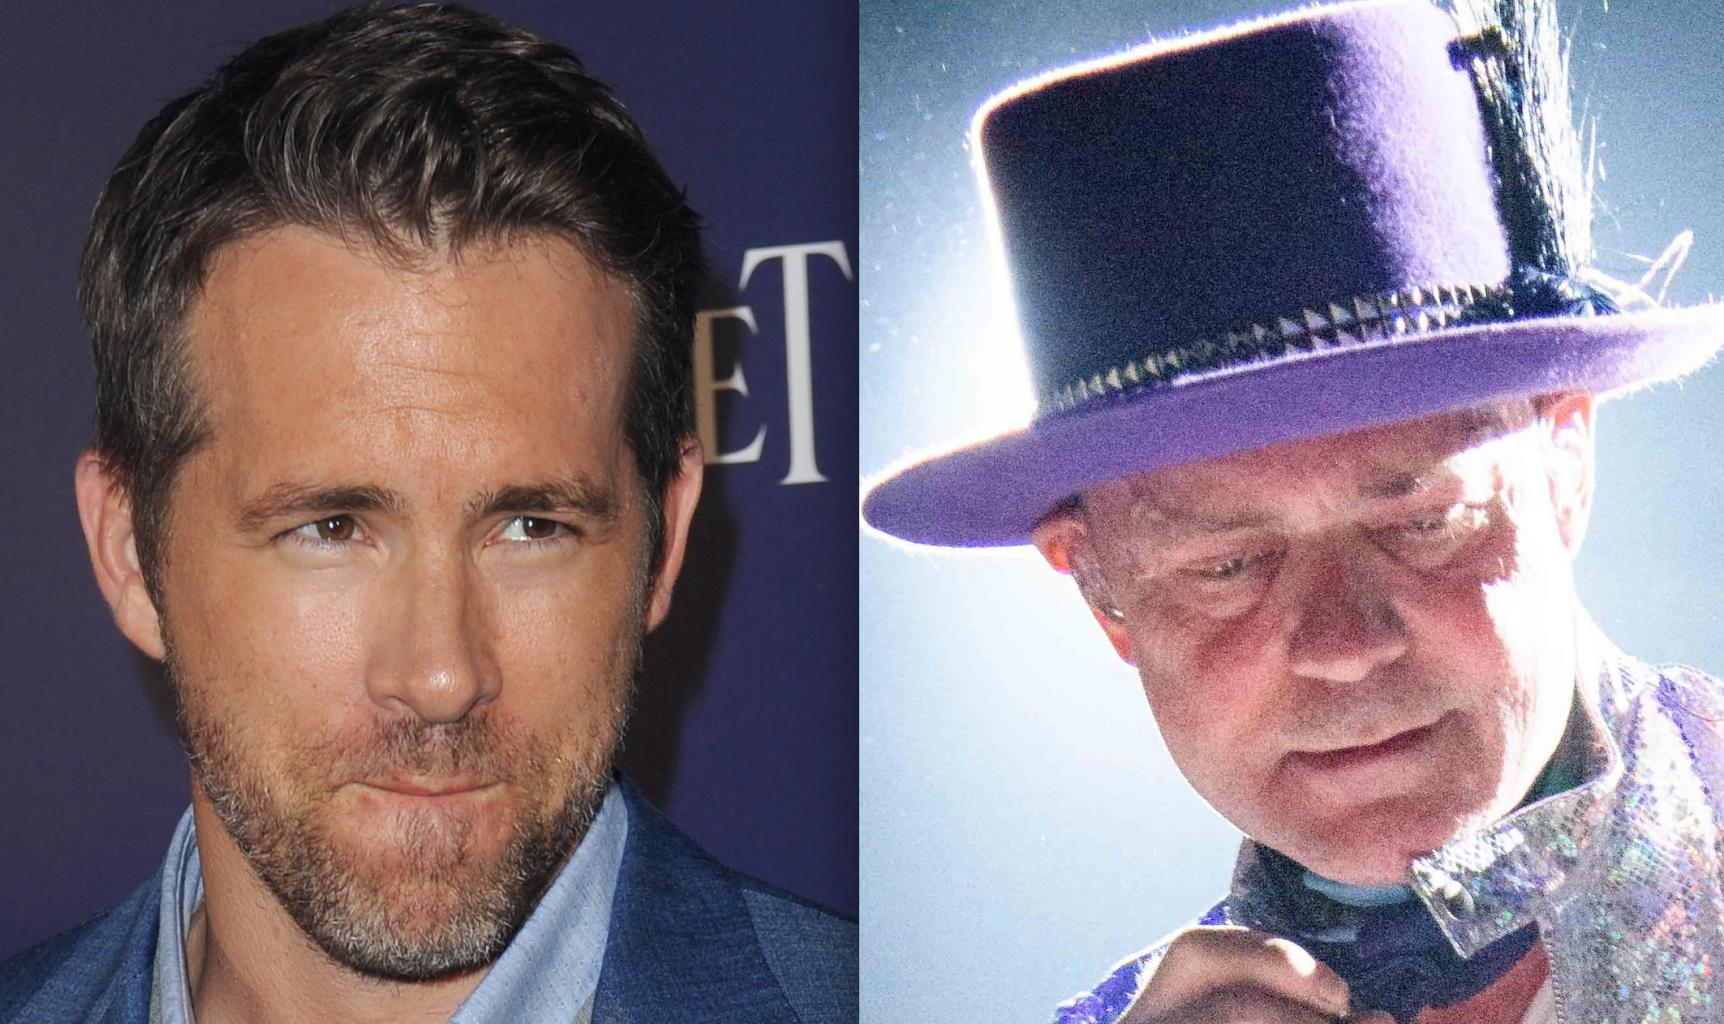 Ryan Reynolds Supports Awarding Order Of Canada To Gord Downie         And The Whole Damn Band